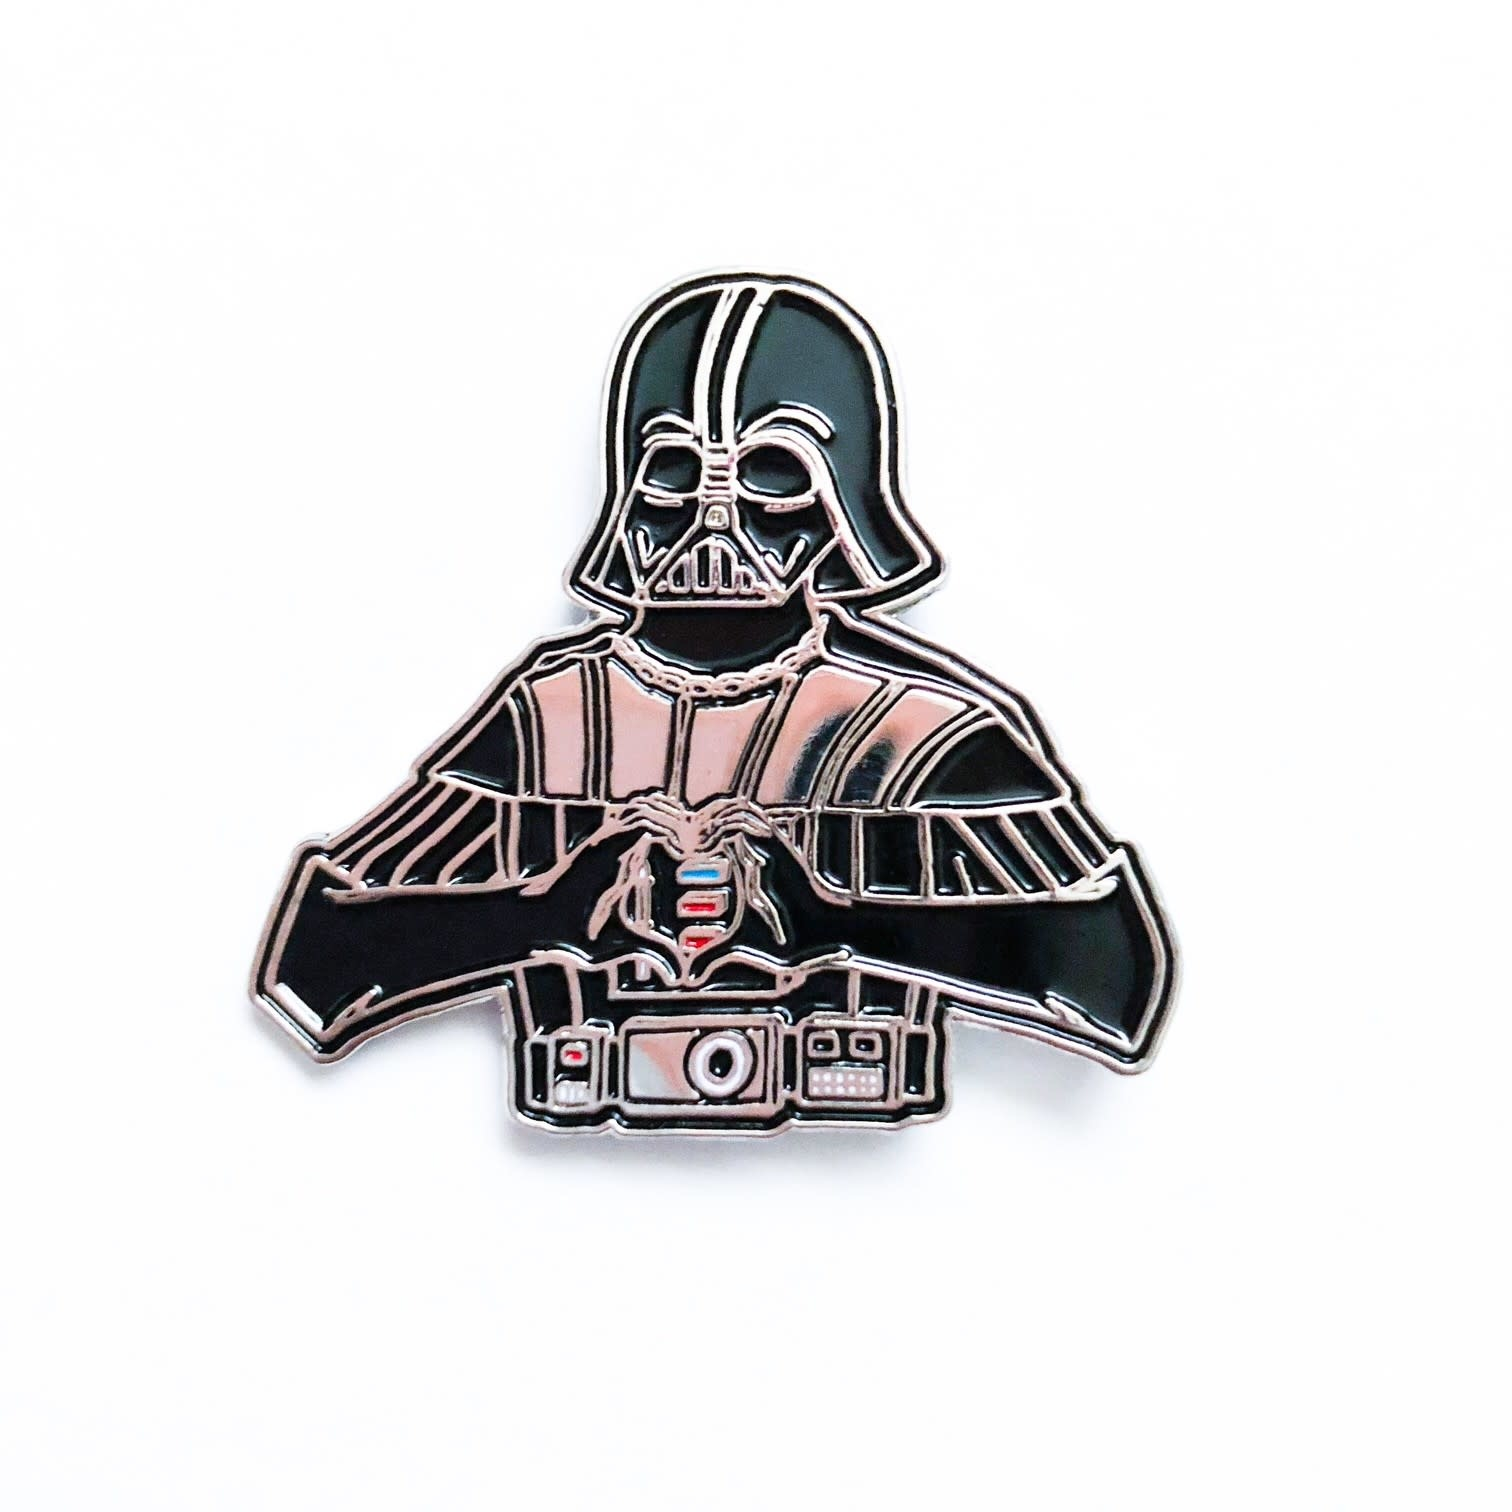 DKE Star Wars: I heart U - Darth Vader Pin